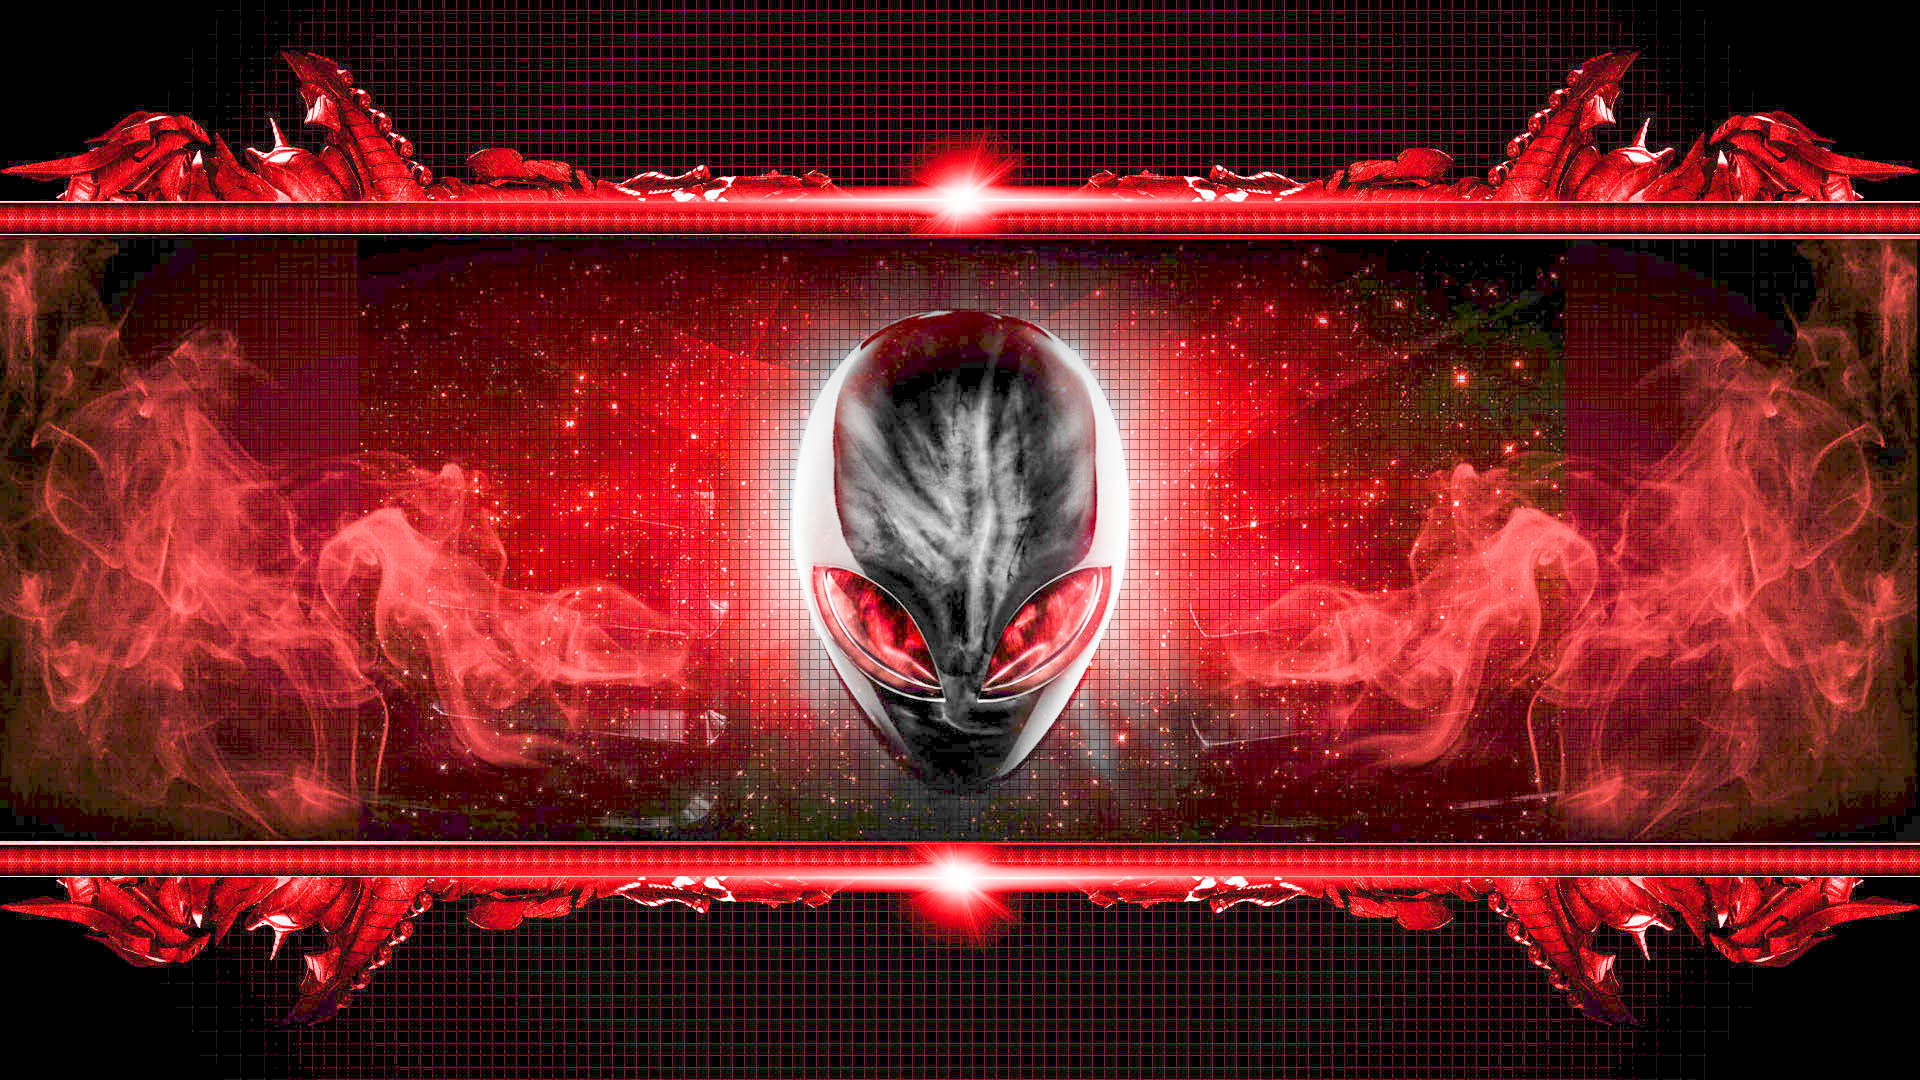 Lieblings Alienware High Definition HD Wallpapers - All HD Wallpapers #YU_15